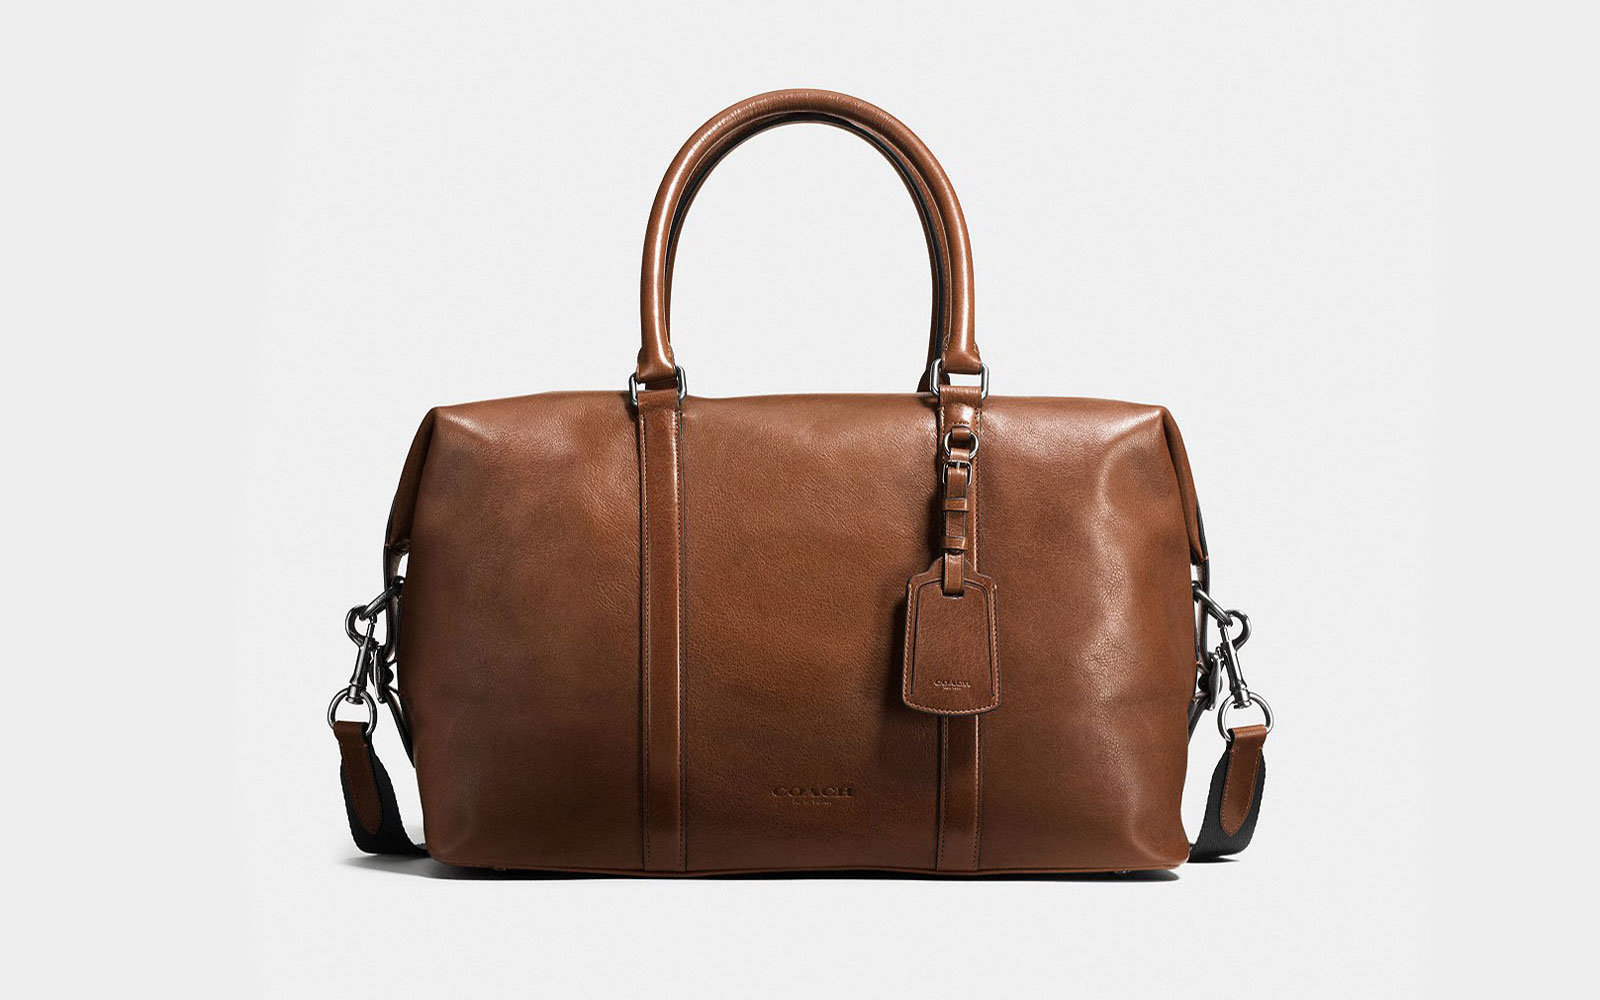 Coach Duffel Bag for Travel